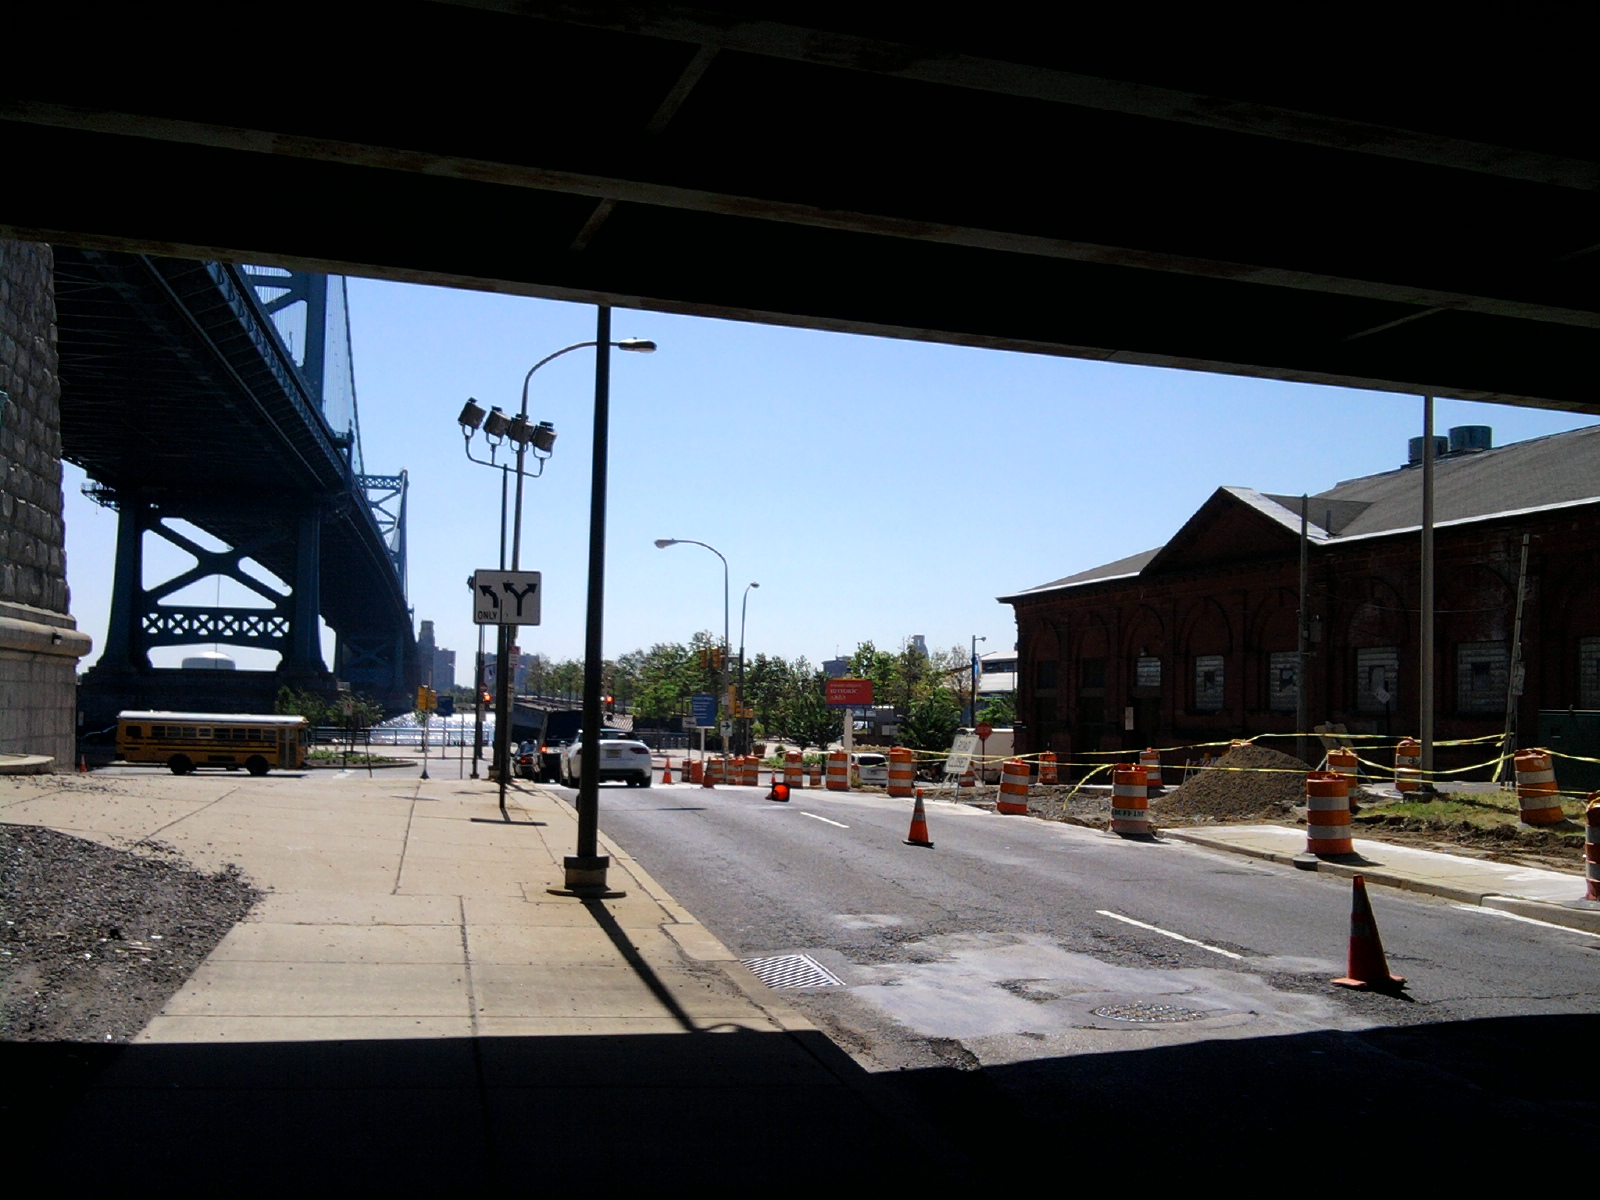 The view from beneath the overpass, toward Race Street Pier